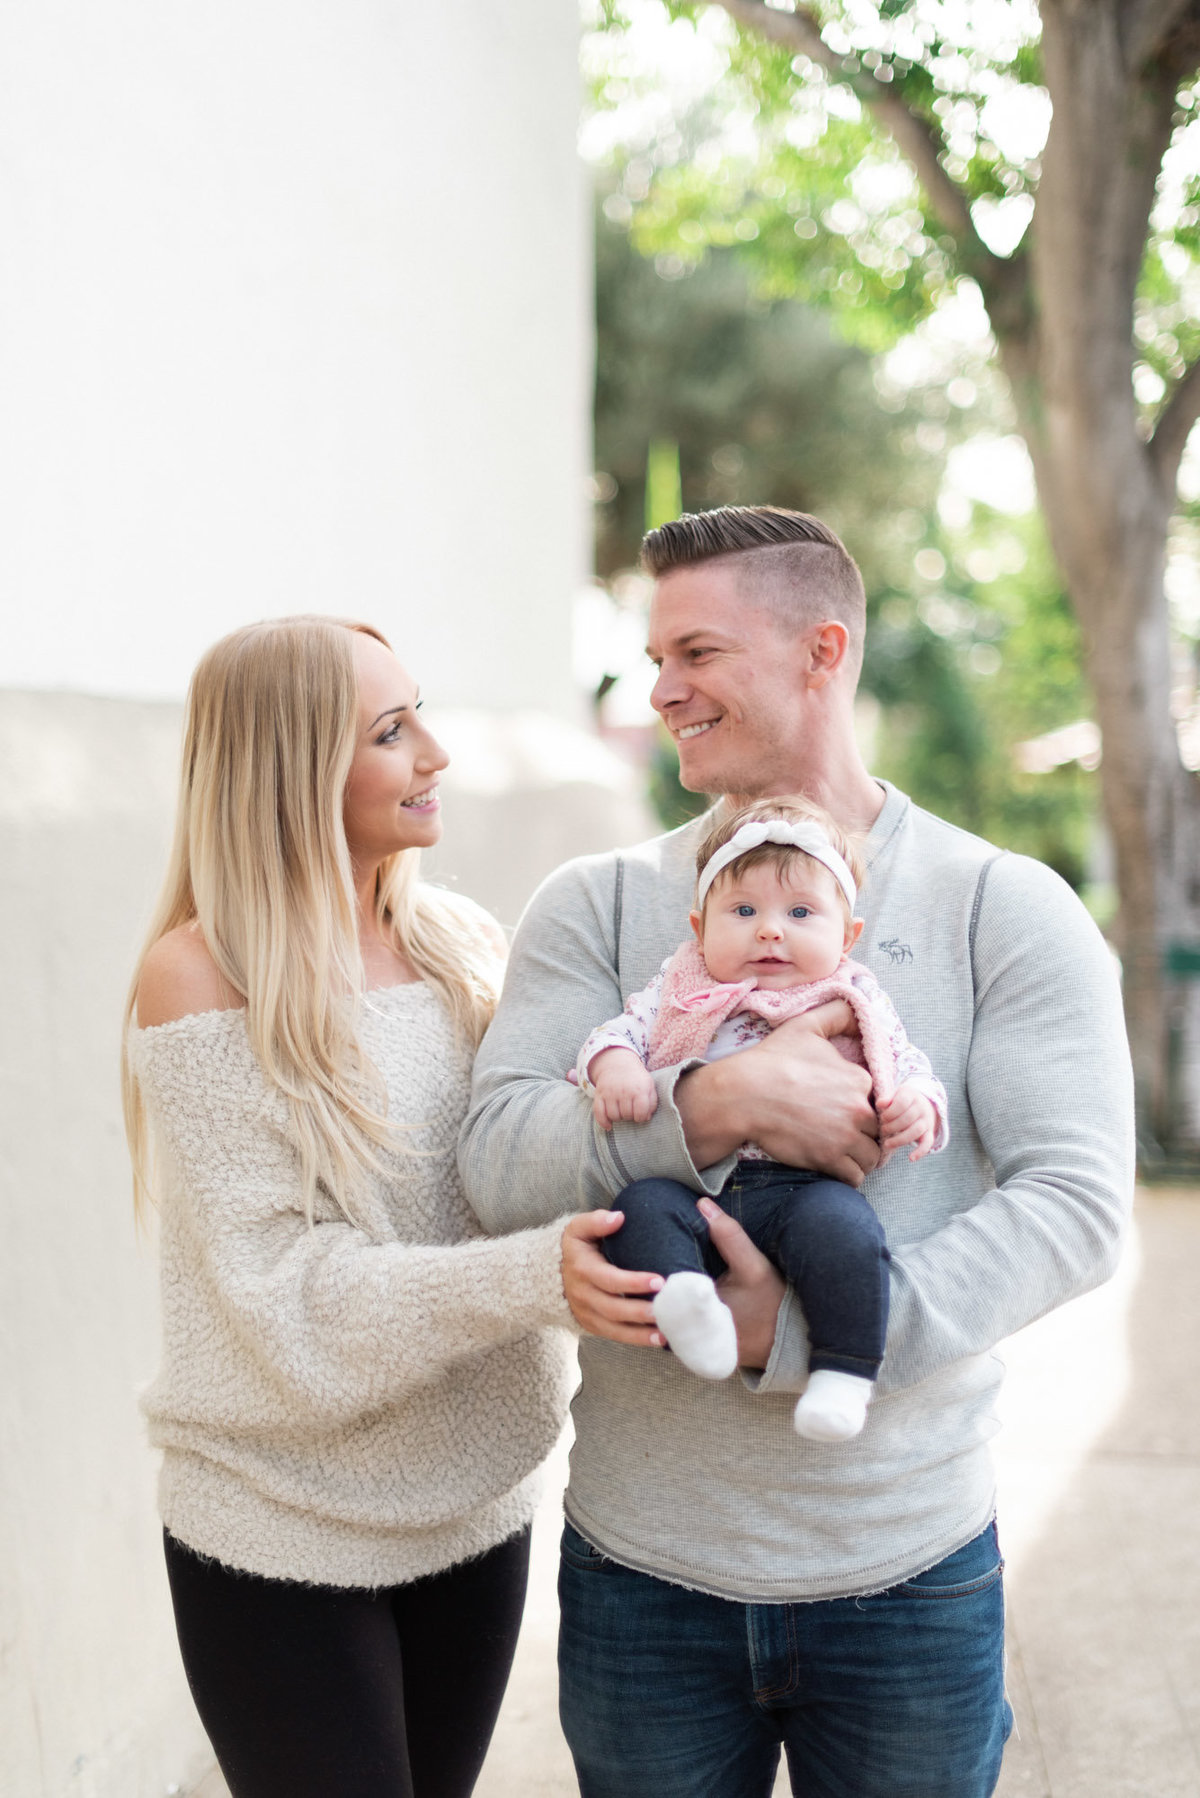 San-Luis-Obispo-Family-Session-by-Central-Coast-Portrait-Photographer-Kirsten-Bullard-2